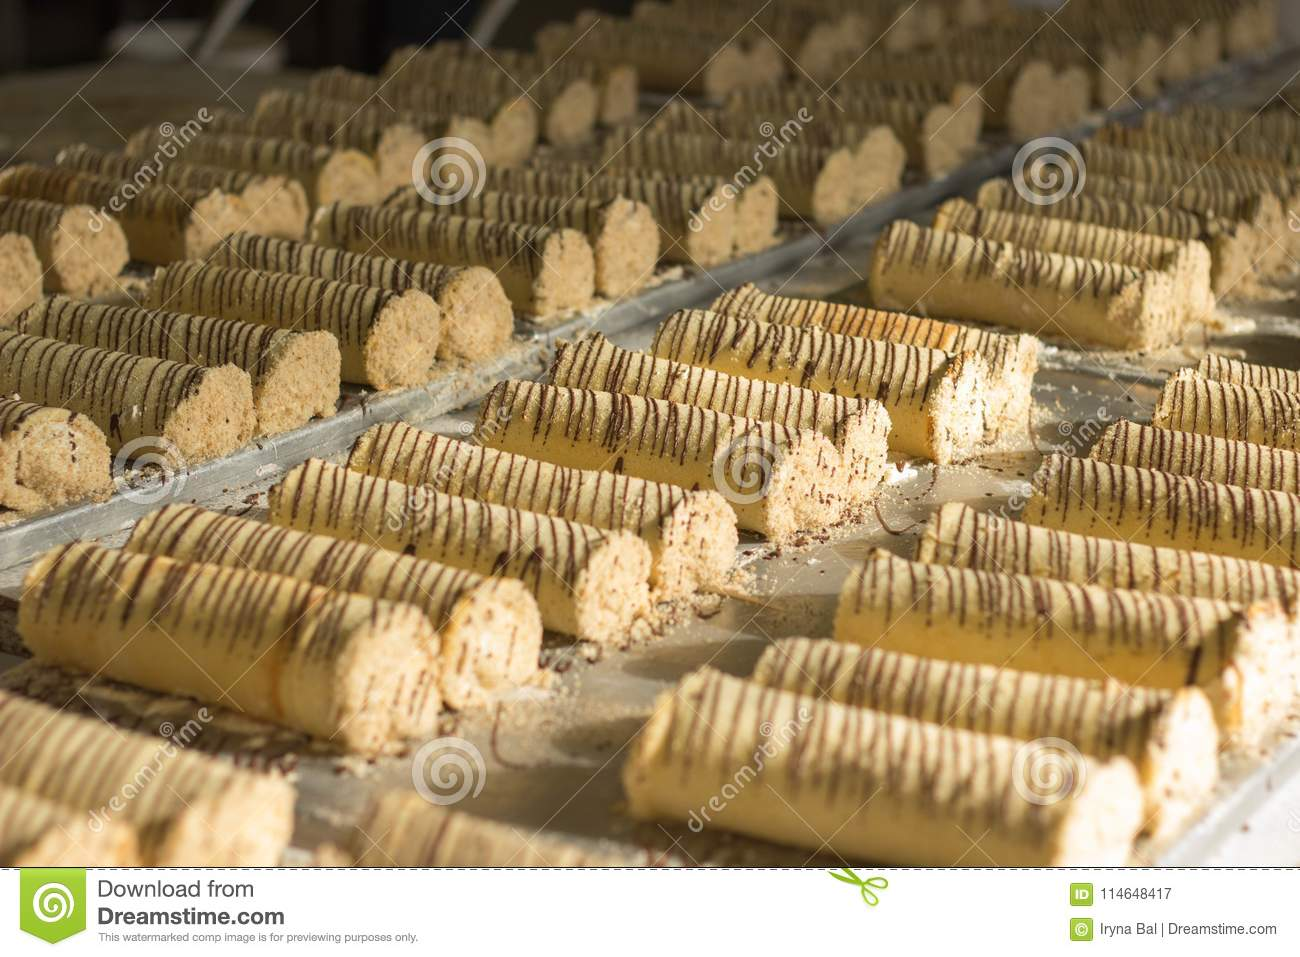 Rolls with chocolate glazings prepared for packaging in boxes